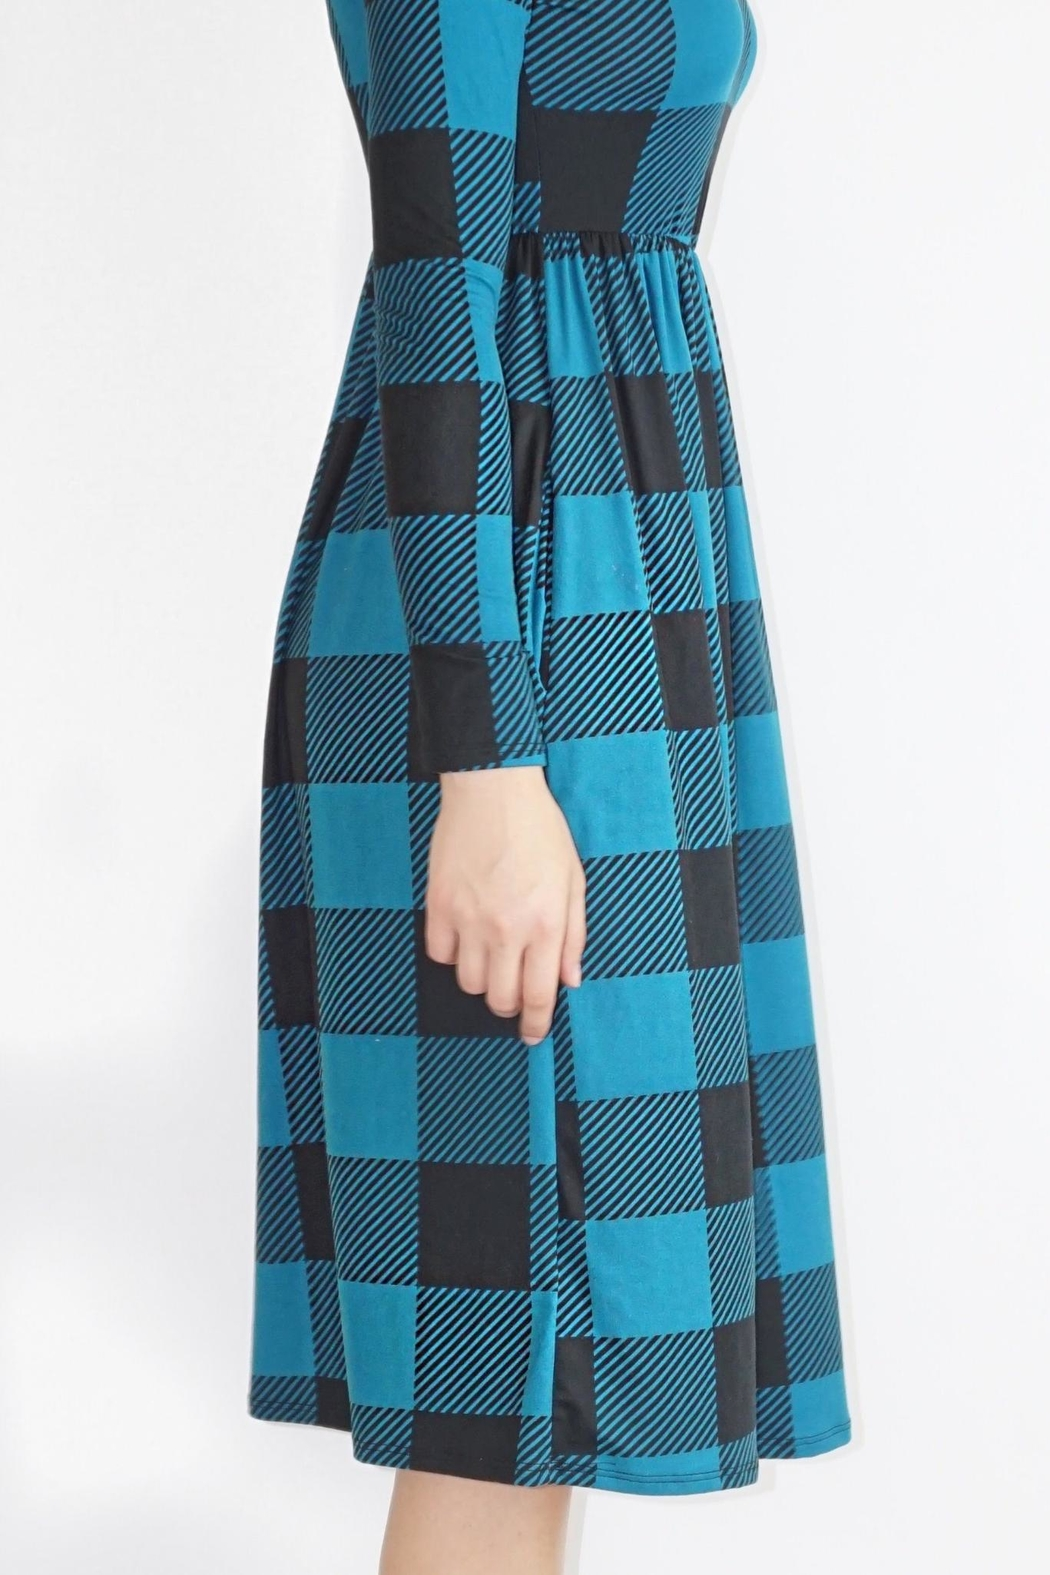 annabelle Teal Checkered Dress - Front Full Image